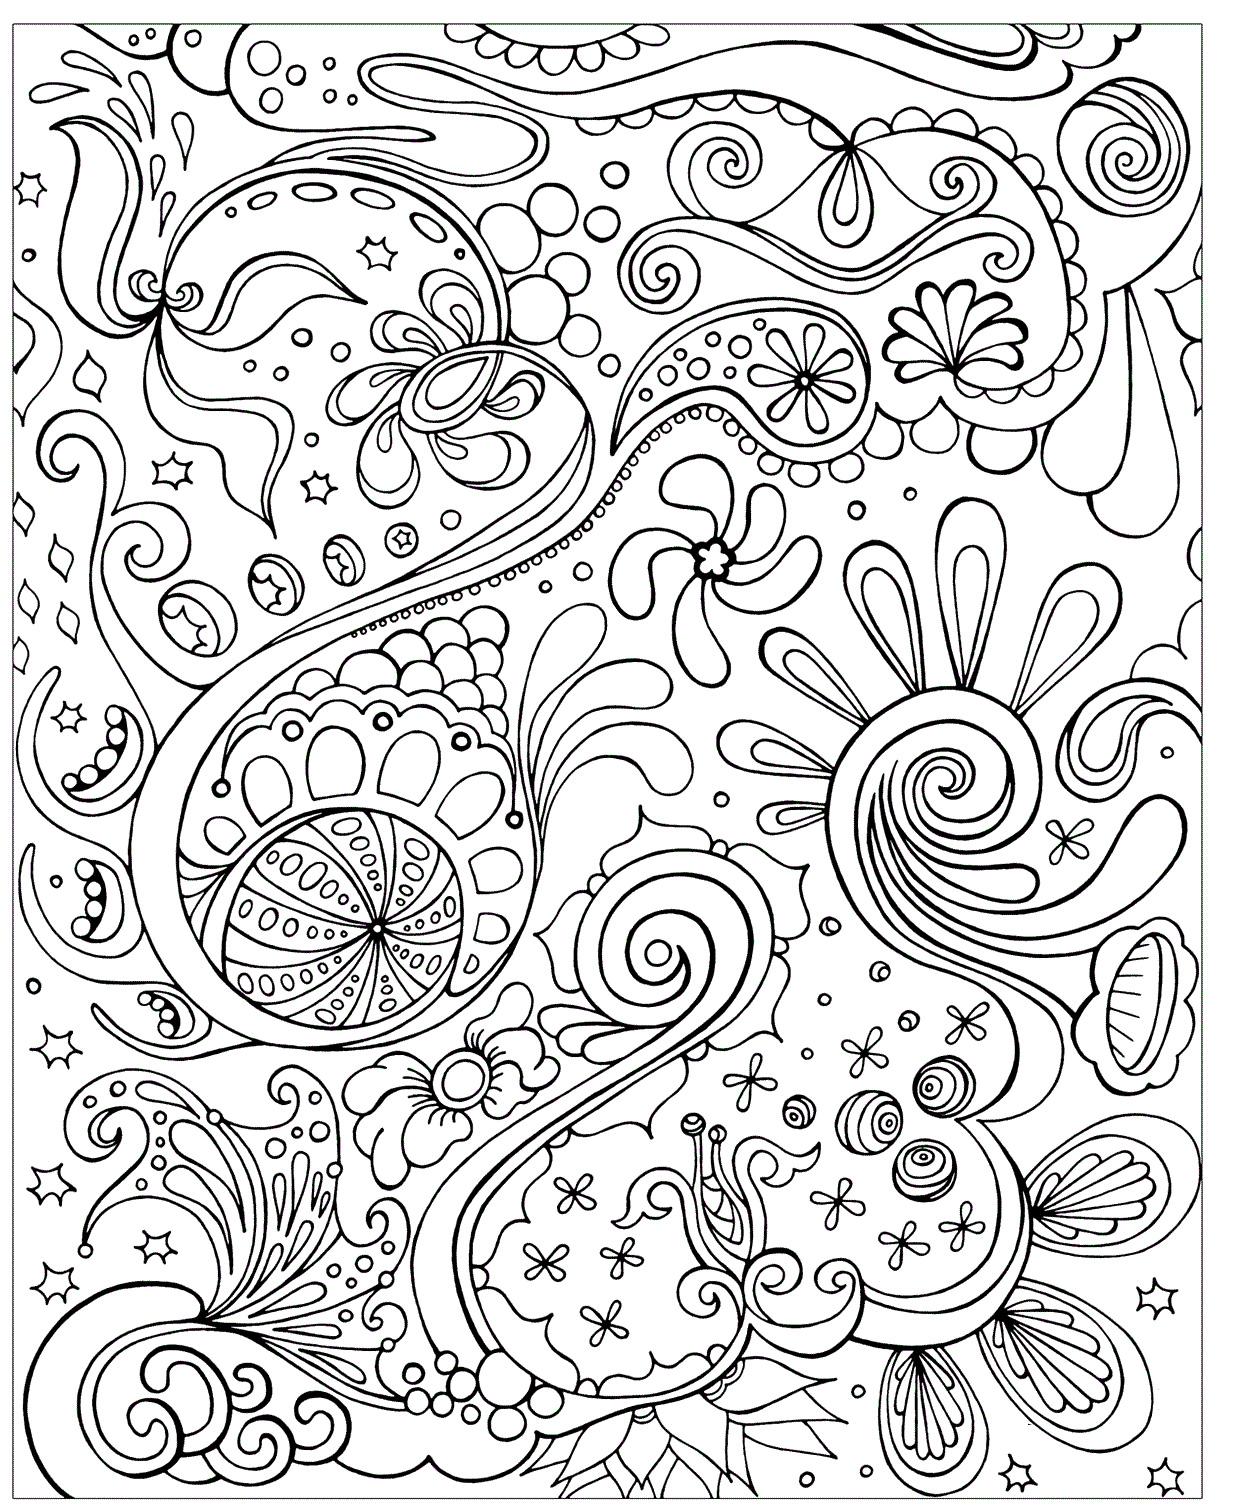 1239x1512 Free Difficult Coloring Pages For Adults